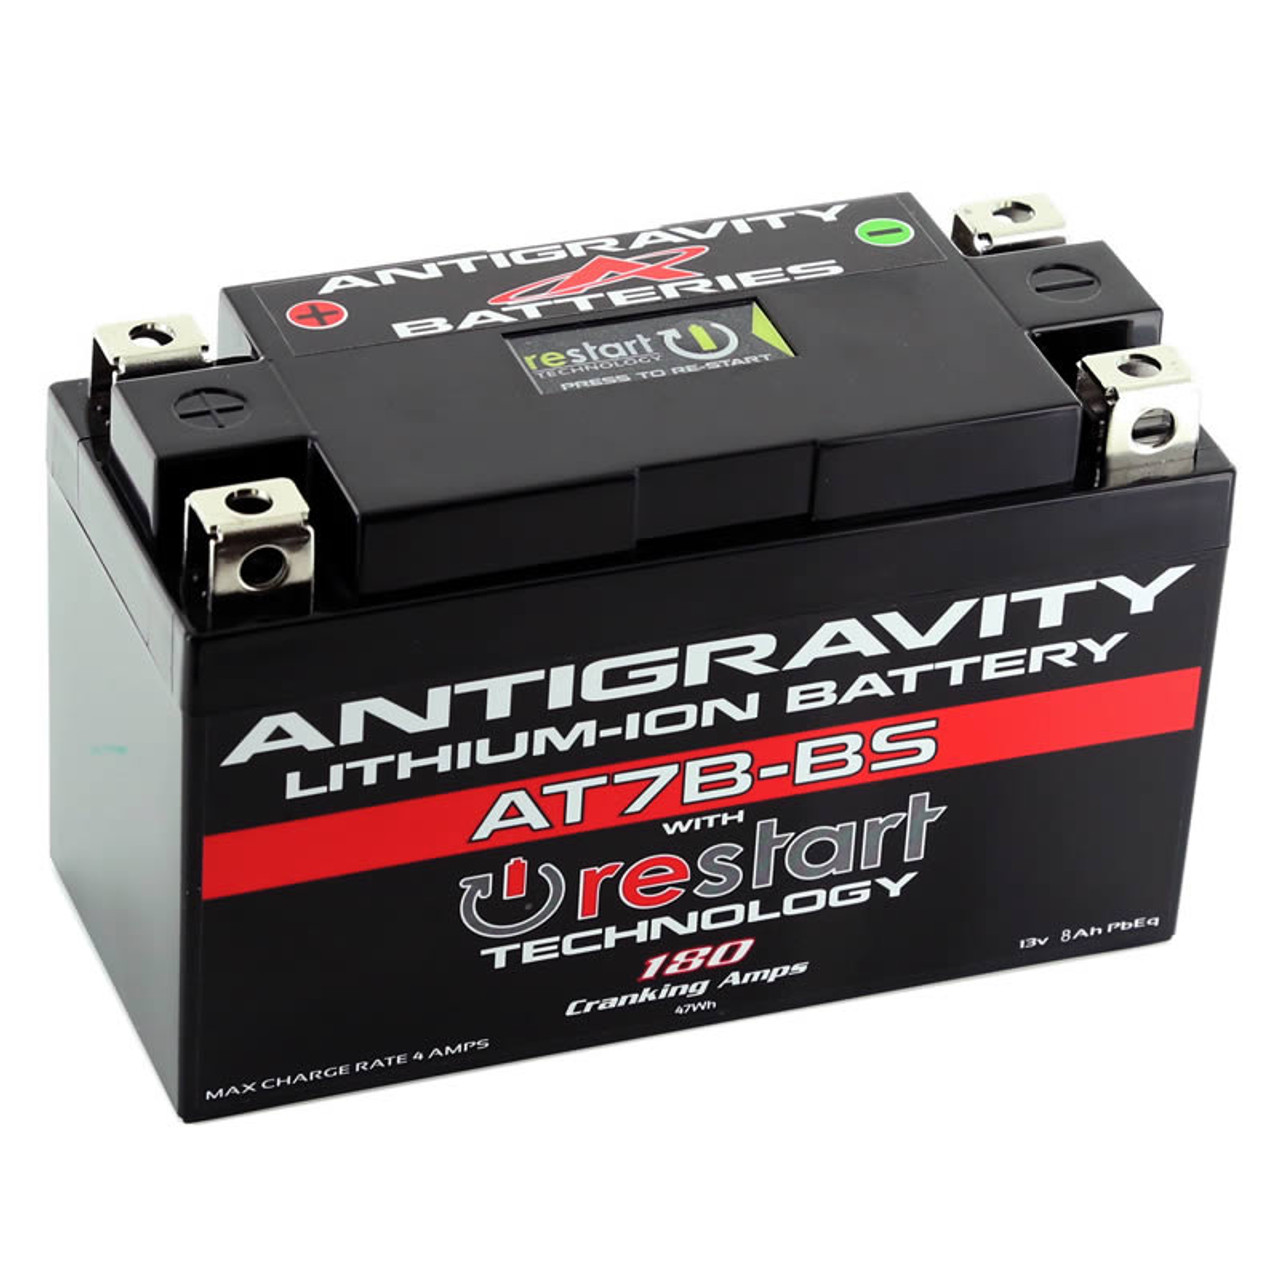 Antigravity Batteries® AT7B-BS RS Lithium Ion Battery w/ BMS and Re-Start  Technology - Fits All Ducati© Panigale Models - Replaces YT7B-BS, YT9B-BS